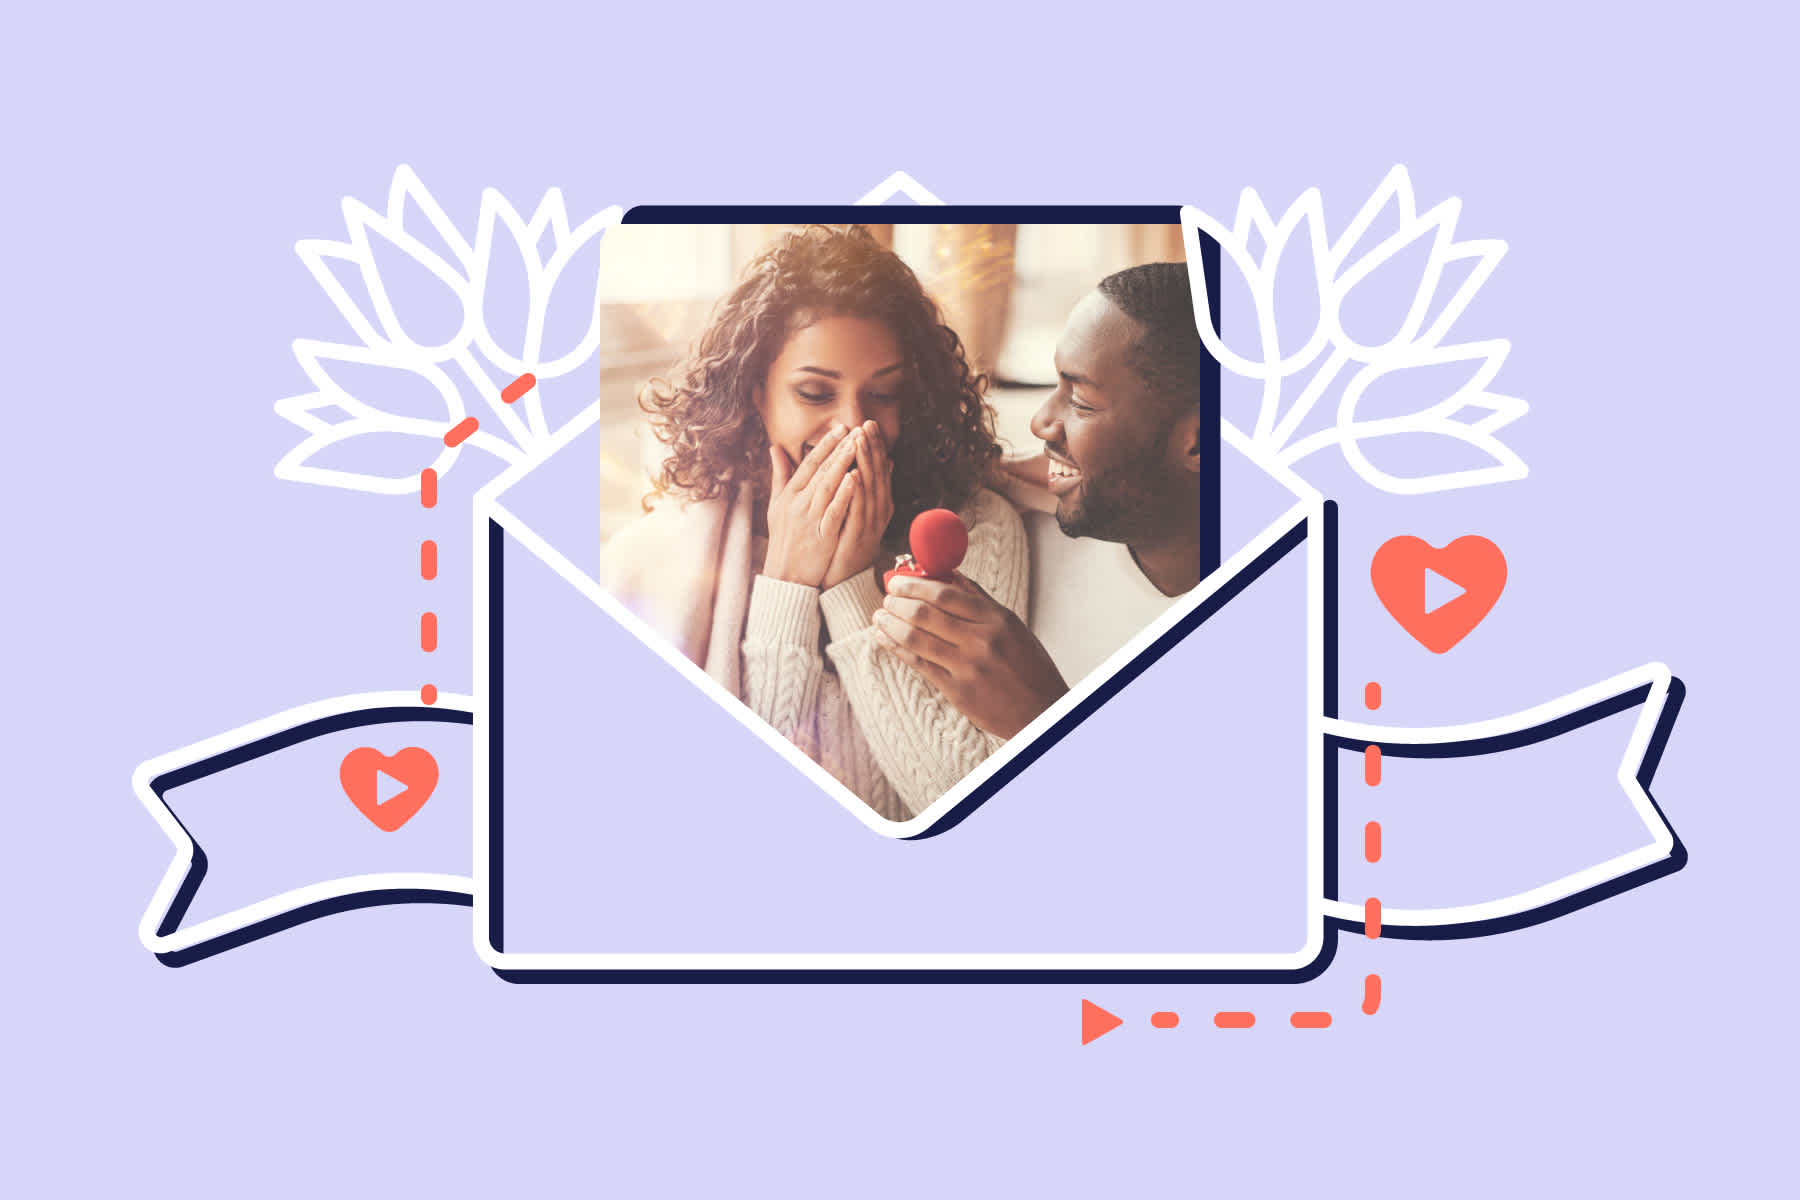 14 Creative Wedding Video Invitation Ideas - Animoto